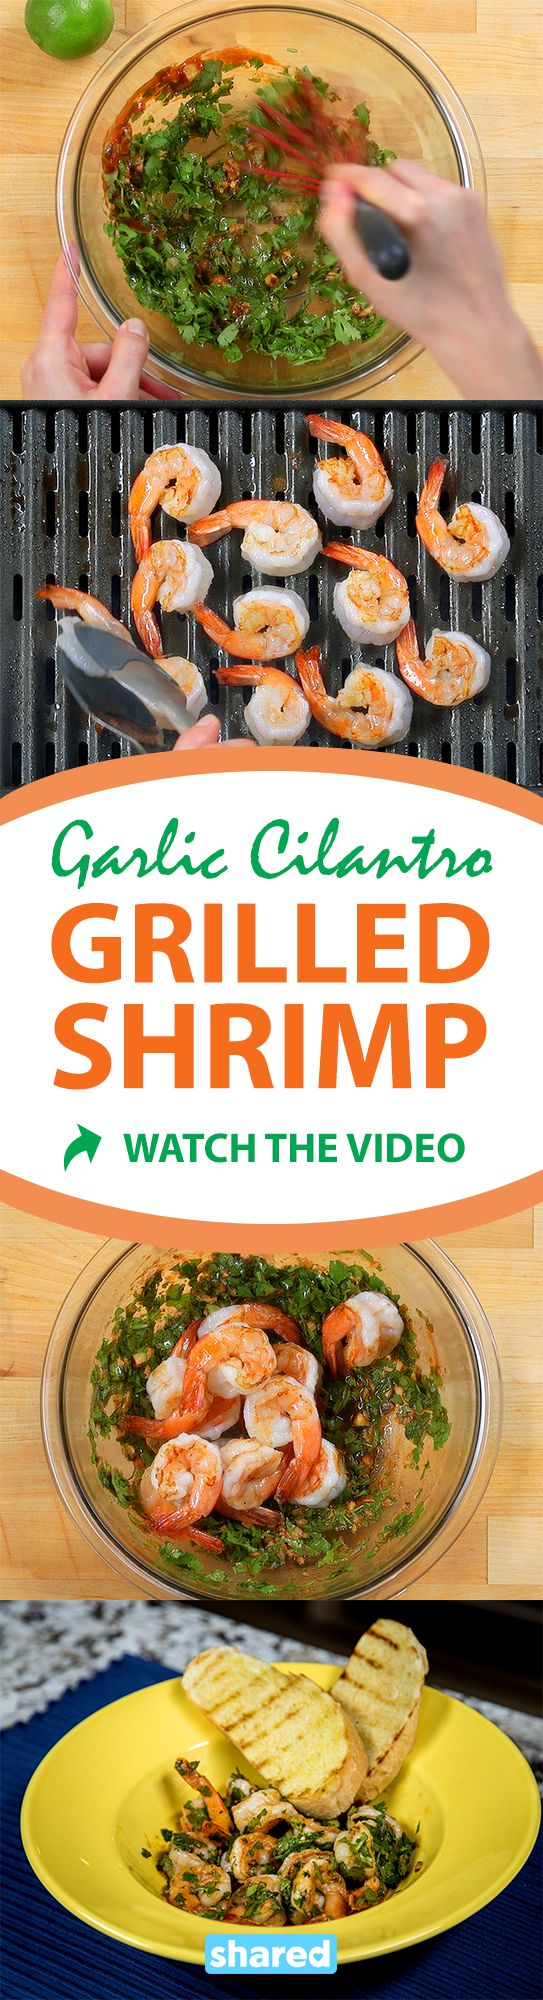 Garlic Cilantro Grilled Shrimp